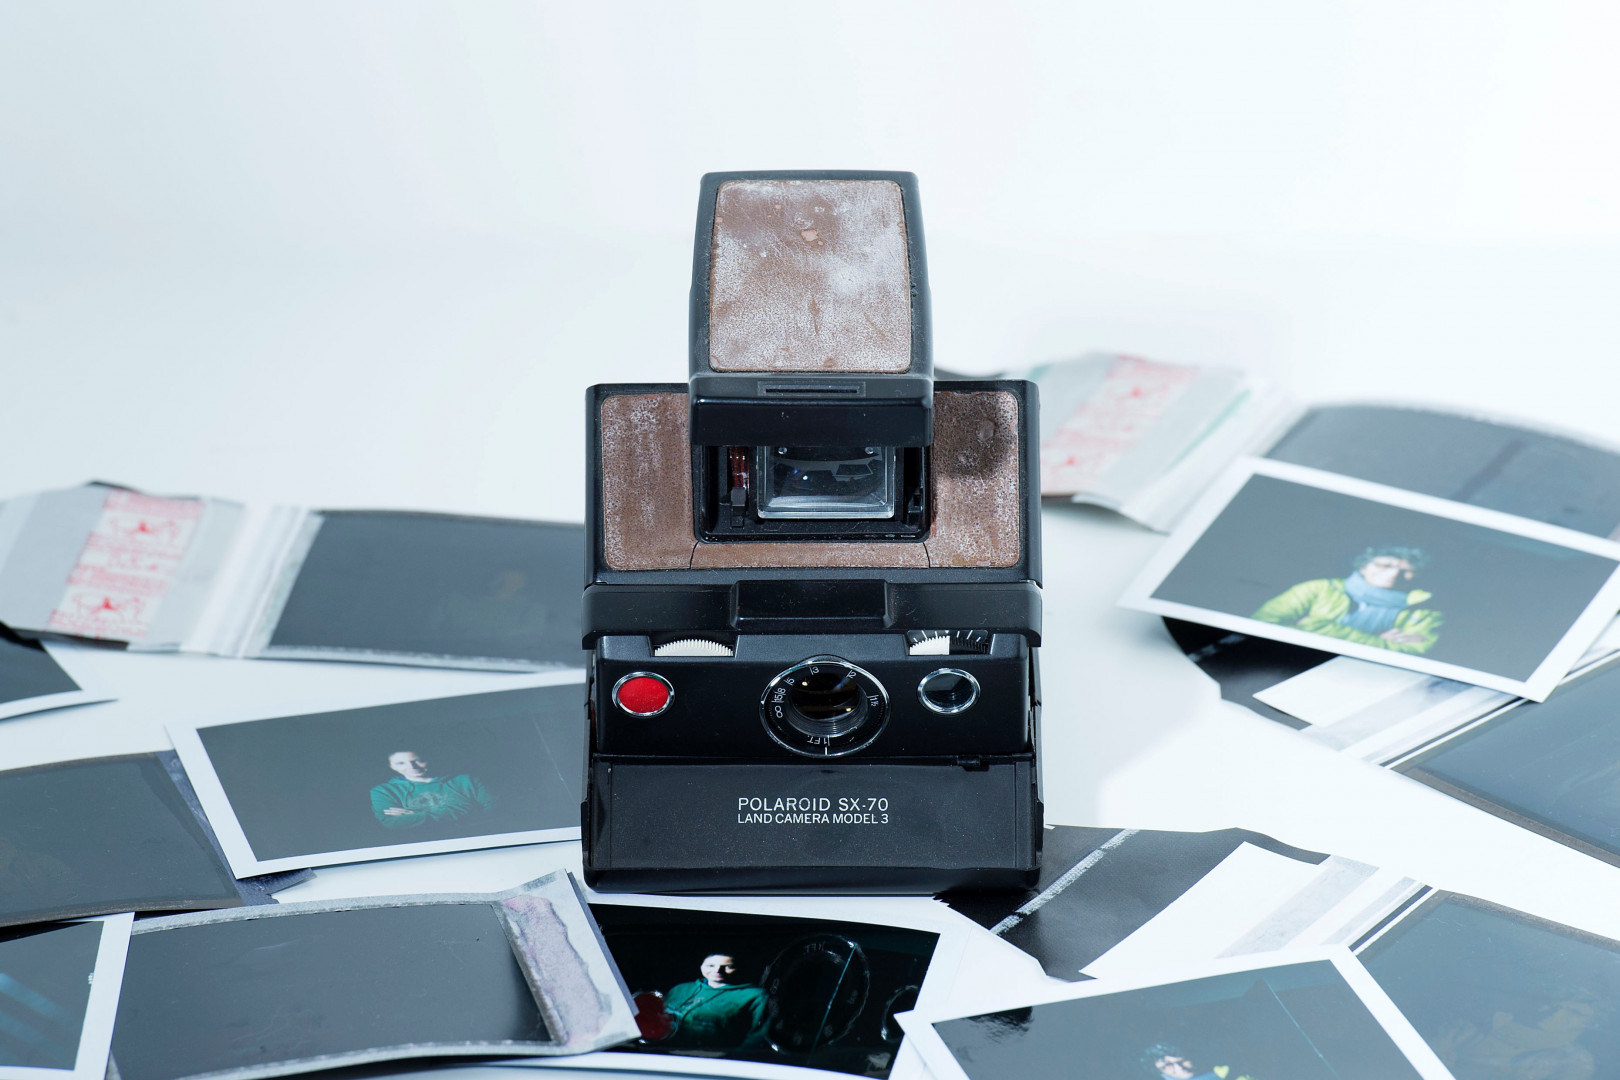 Un appareil photo polaroïd ancien (illustration)